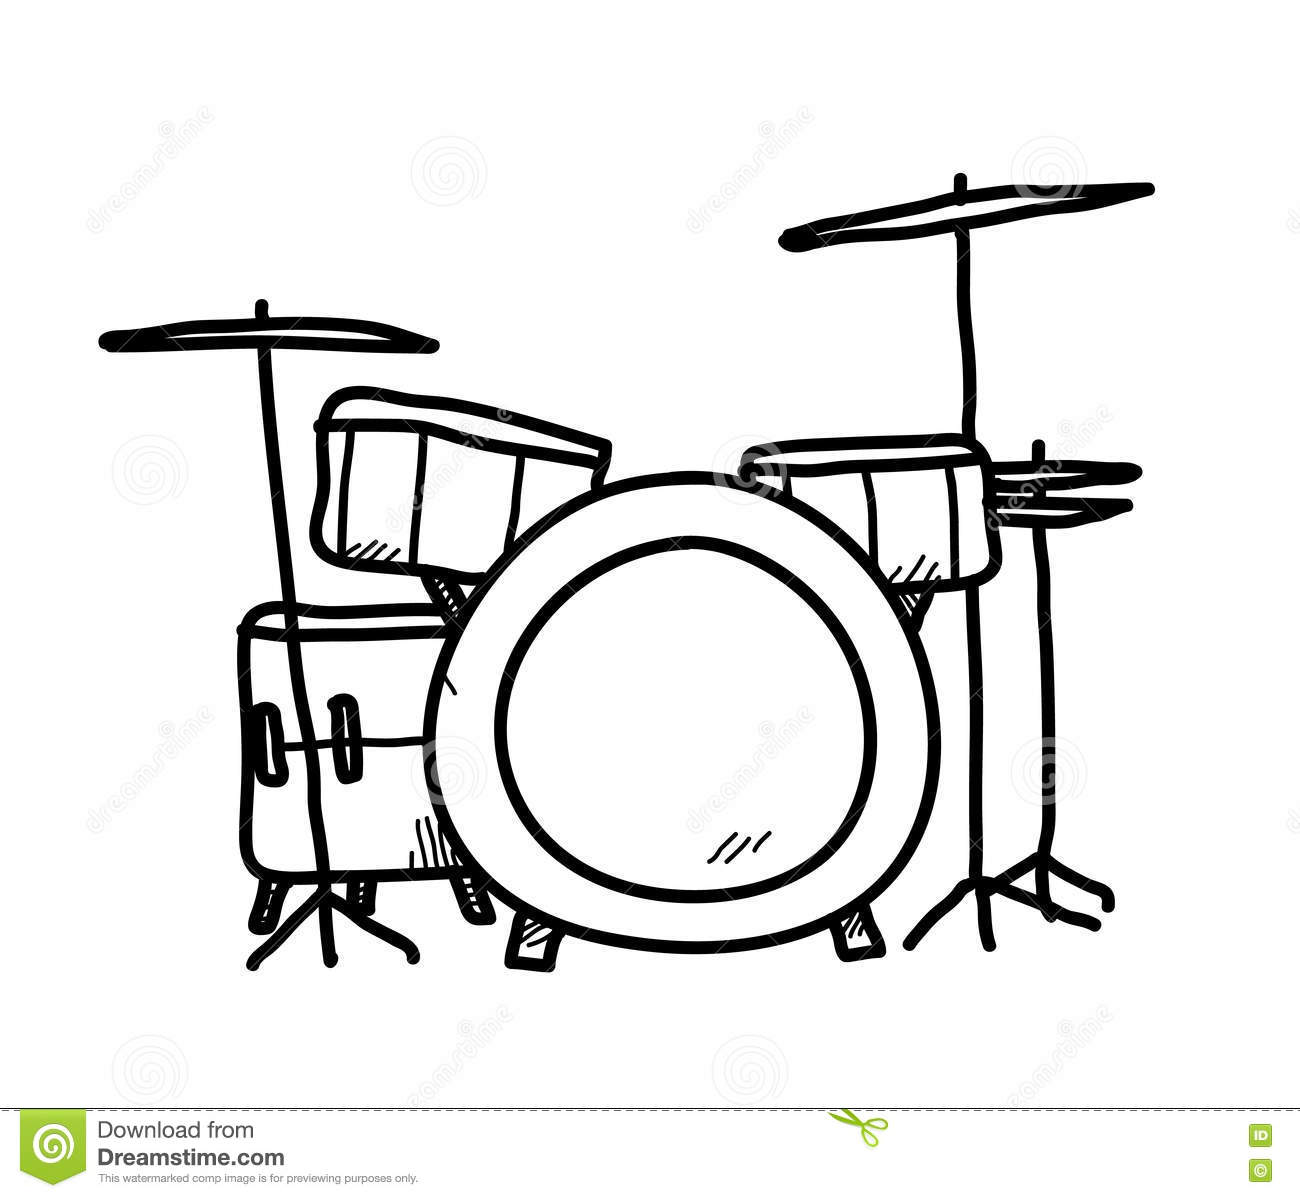 Drum Set Doodle stock vector. Illustration of icon, drums